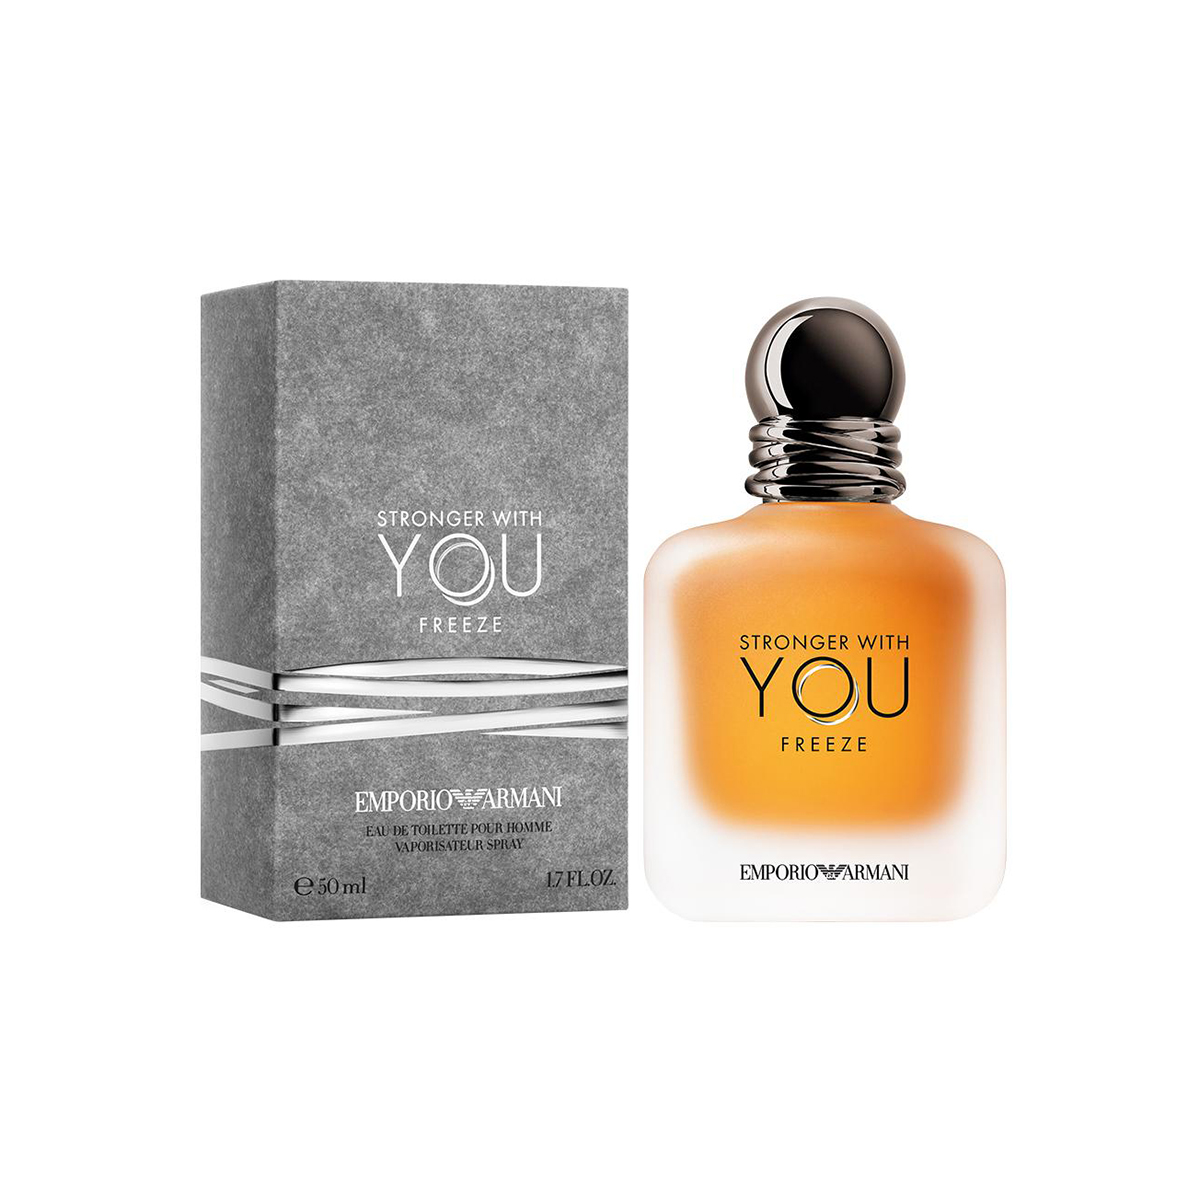 Emporio armani stronger with you freeze eau de toilette pour homme 50ml vaporizador